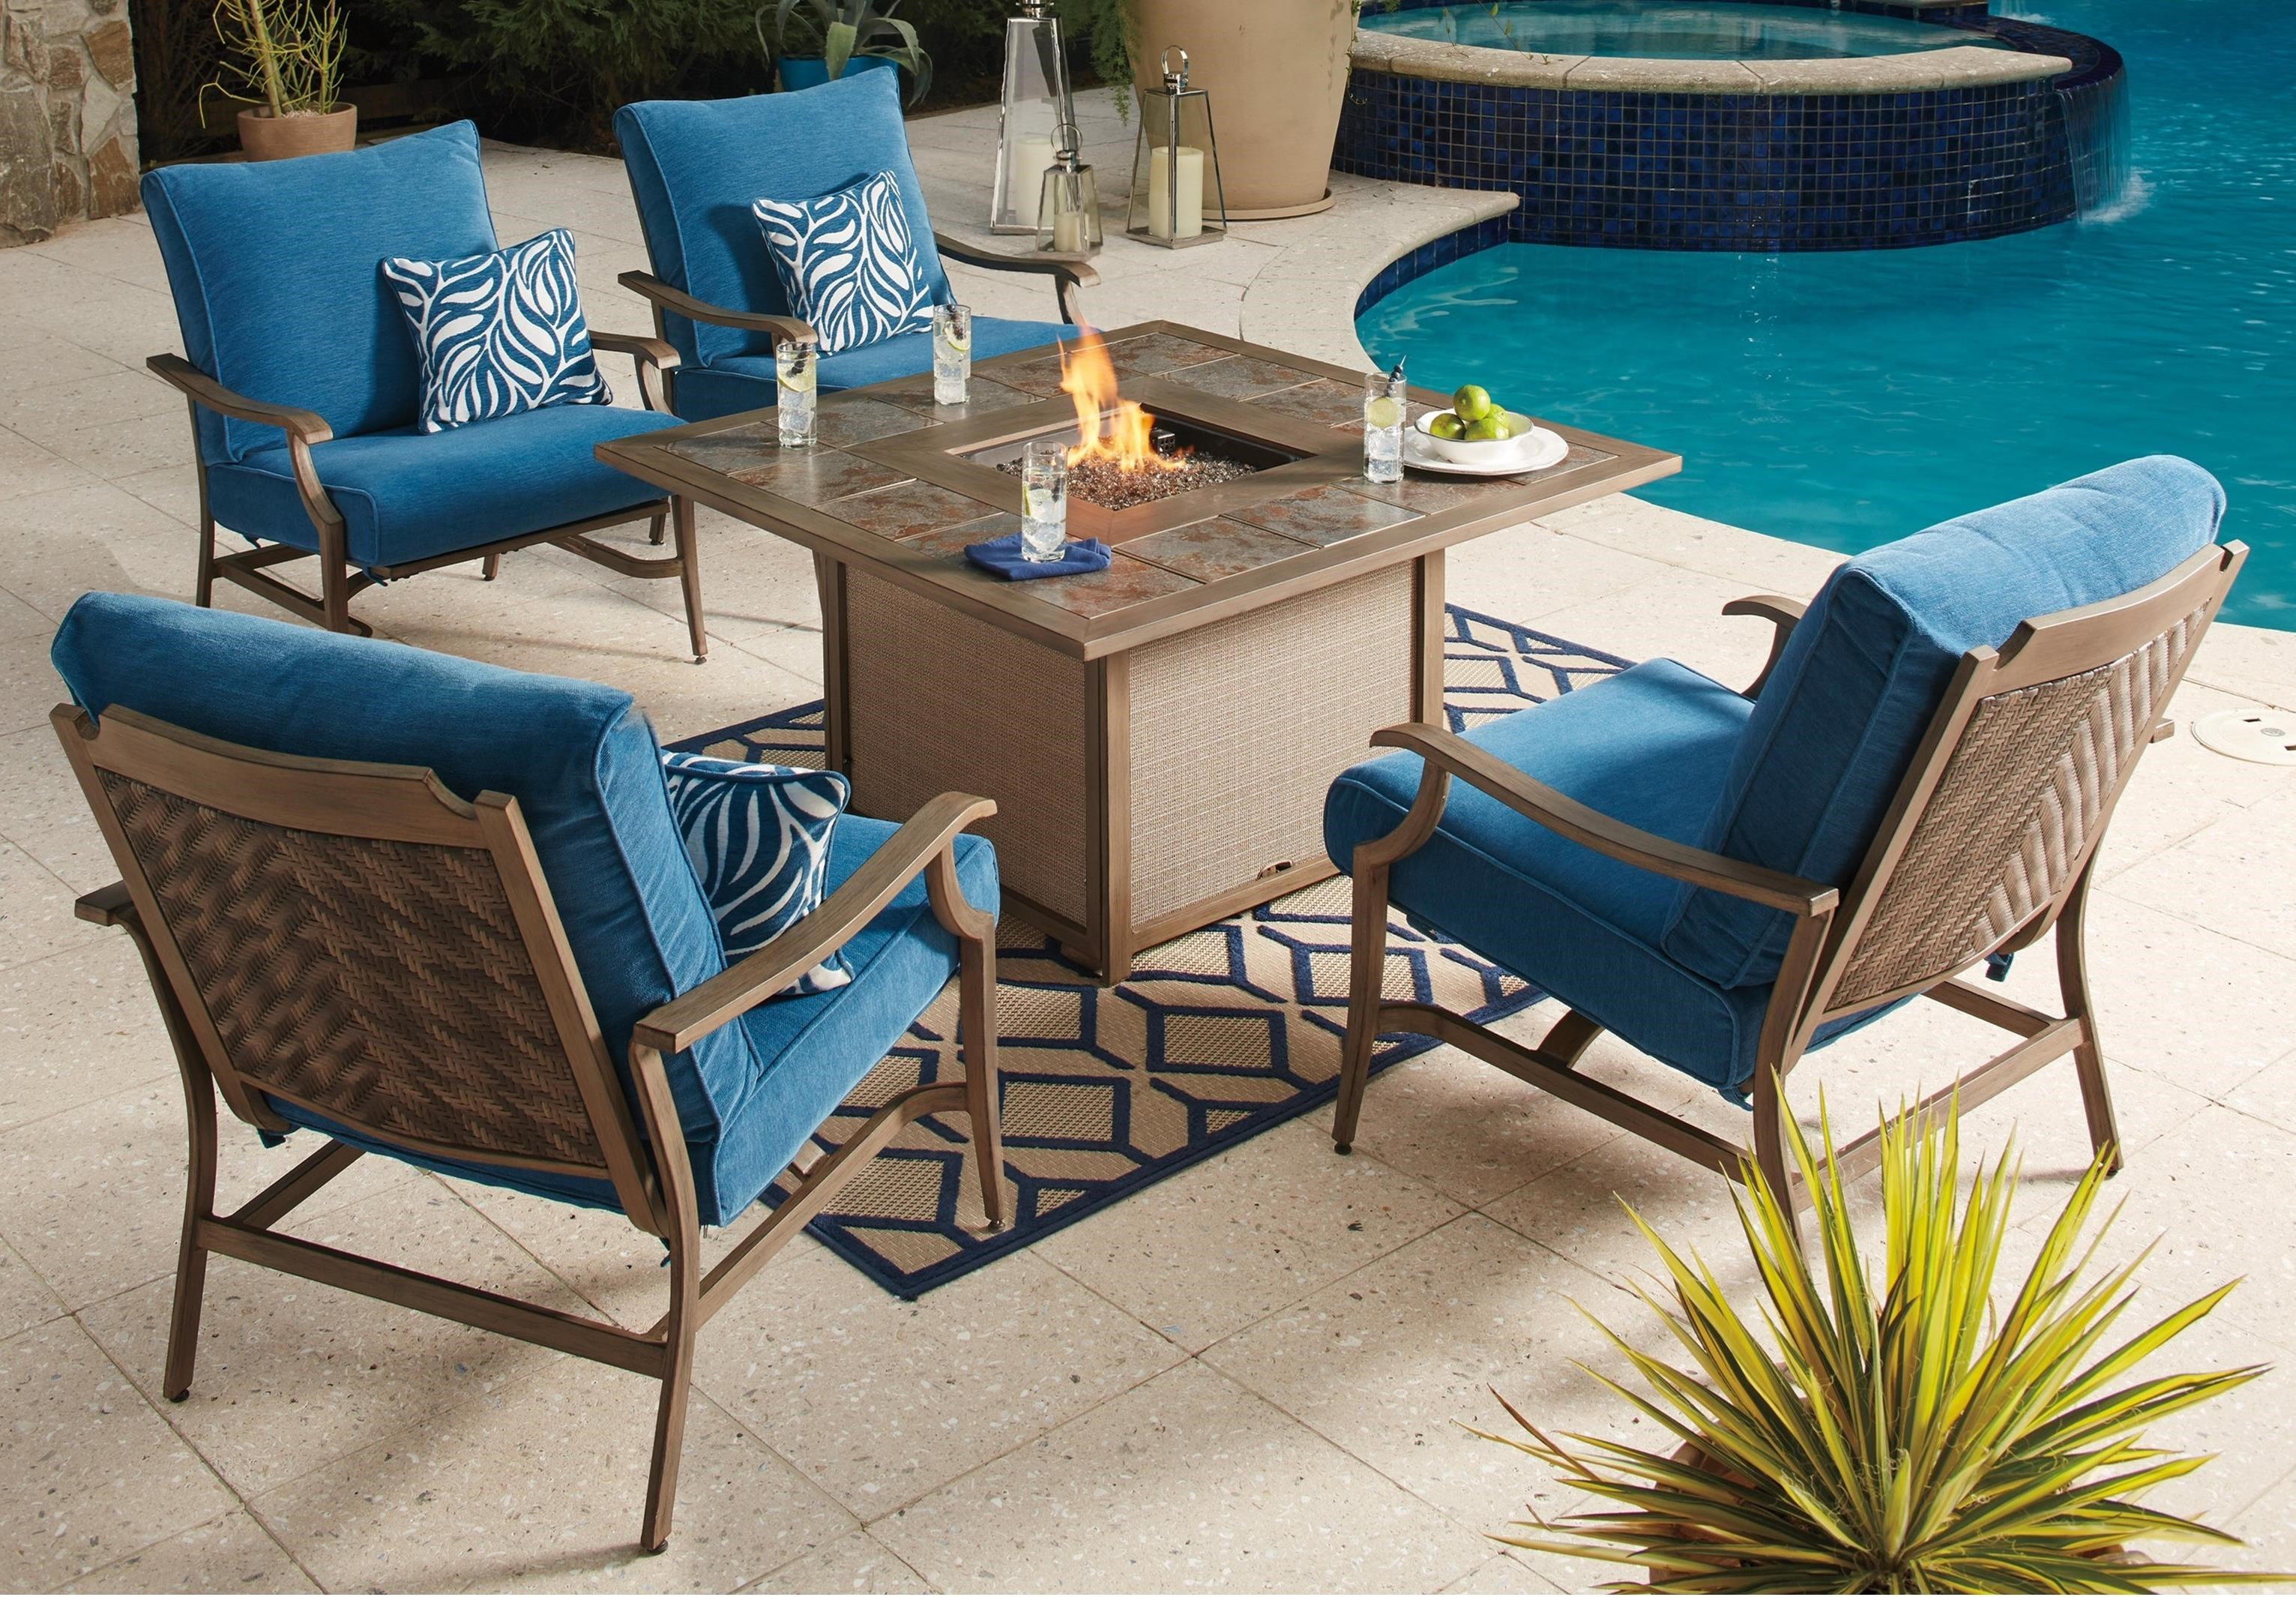 Signature Design By Ashley Partanna 5 Piece Outdoor Fire Pit Set   John V  Schultz Furniture   Outdoor Conversation Sets/Outdoor Chat Sets